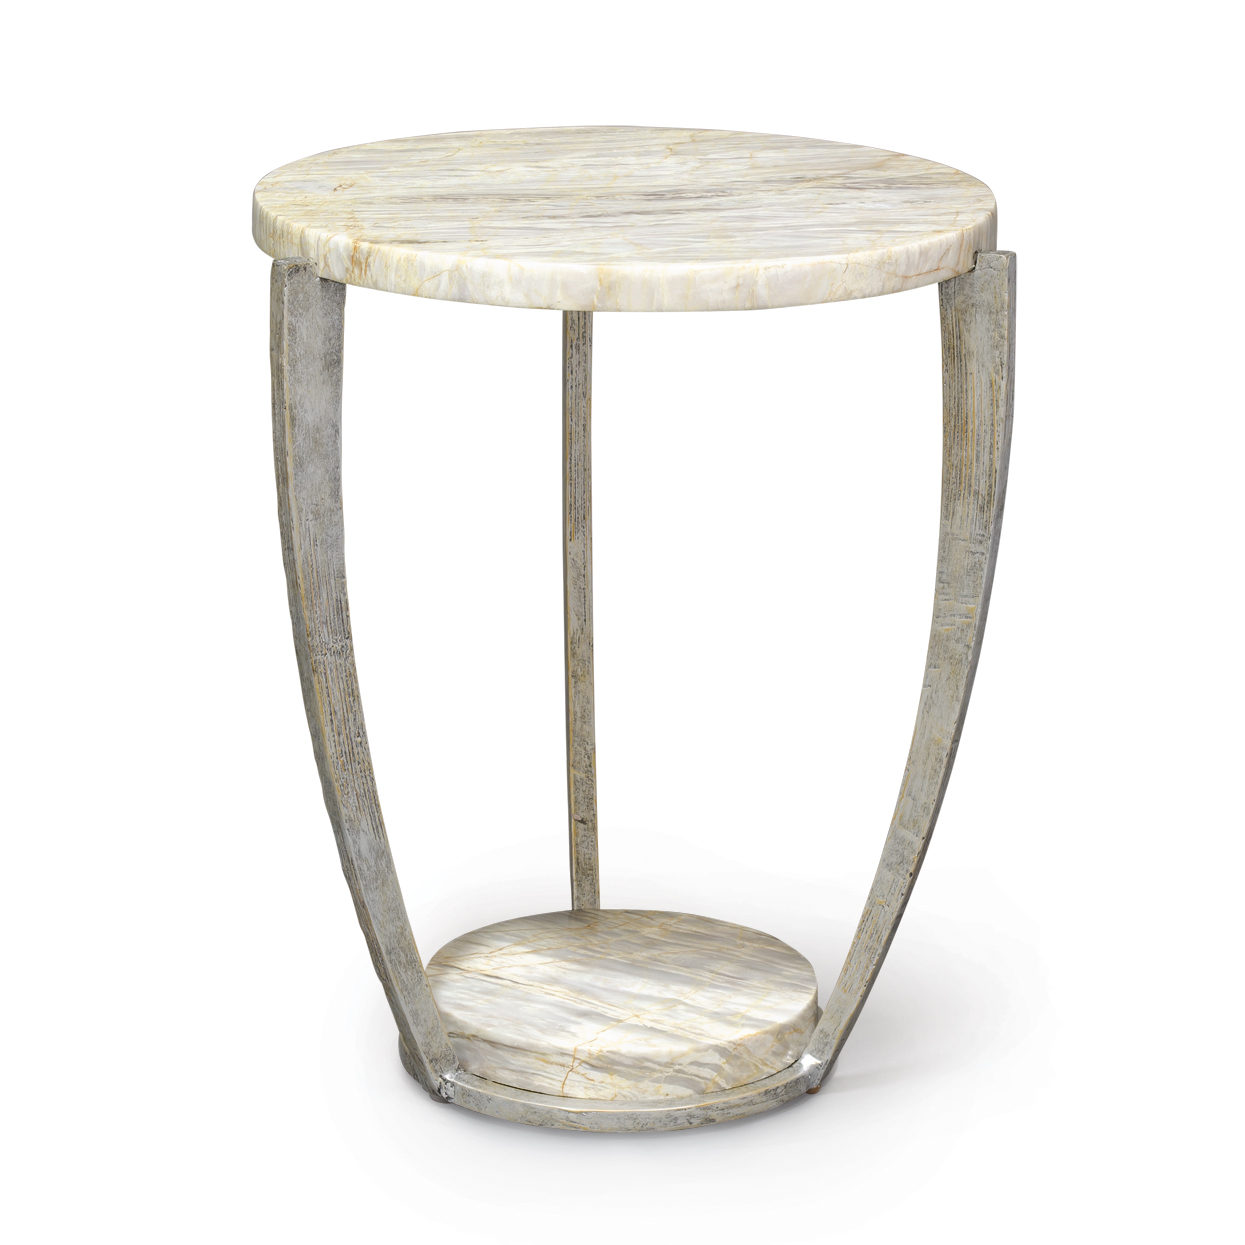 exciting marble accent table set bistro threshold top wood round small antique and faux killian target metal black white nero full size entryway sofa side with drawer blue